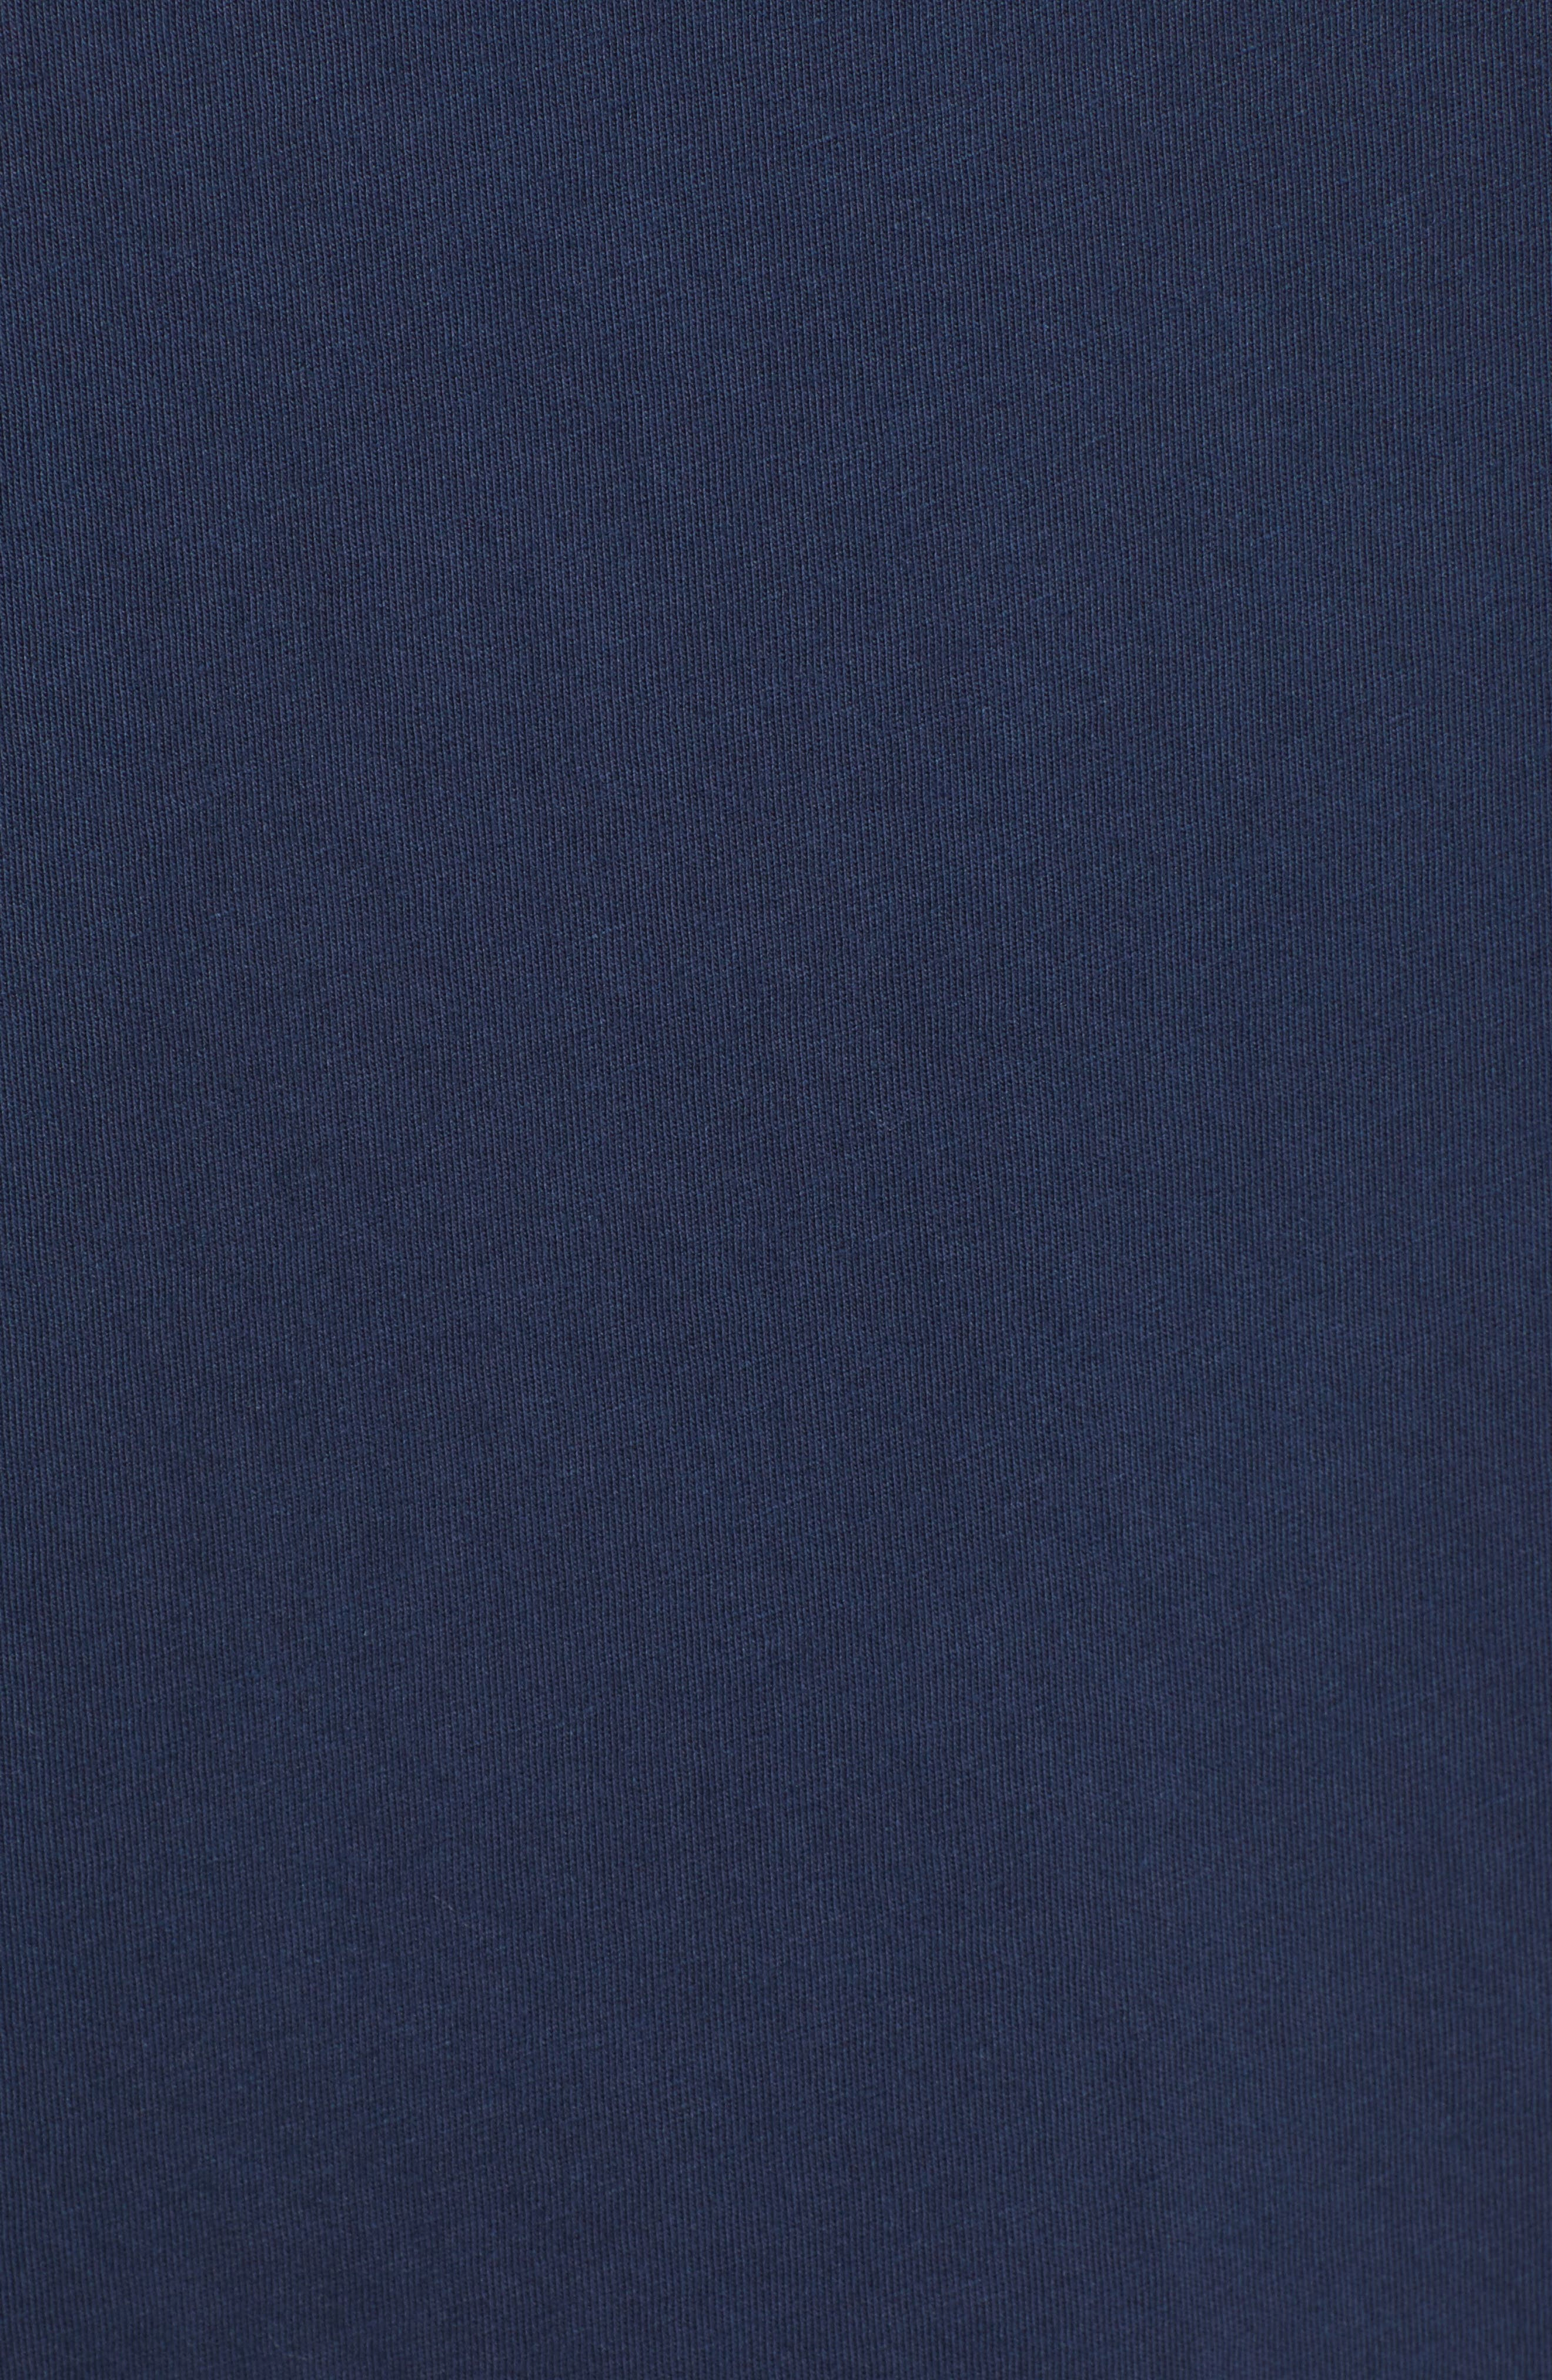 The Boxy Goodie Goodie Supima<sup>®</sup> Cotton Tee,                             Alternate thumbnail 6, color,                             NAVY